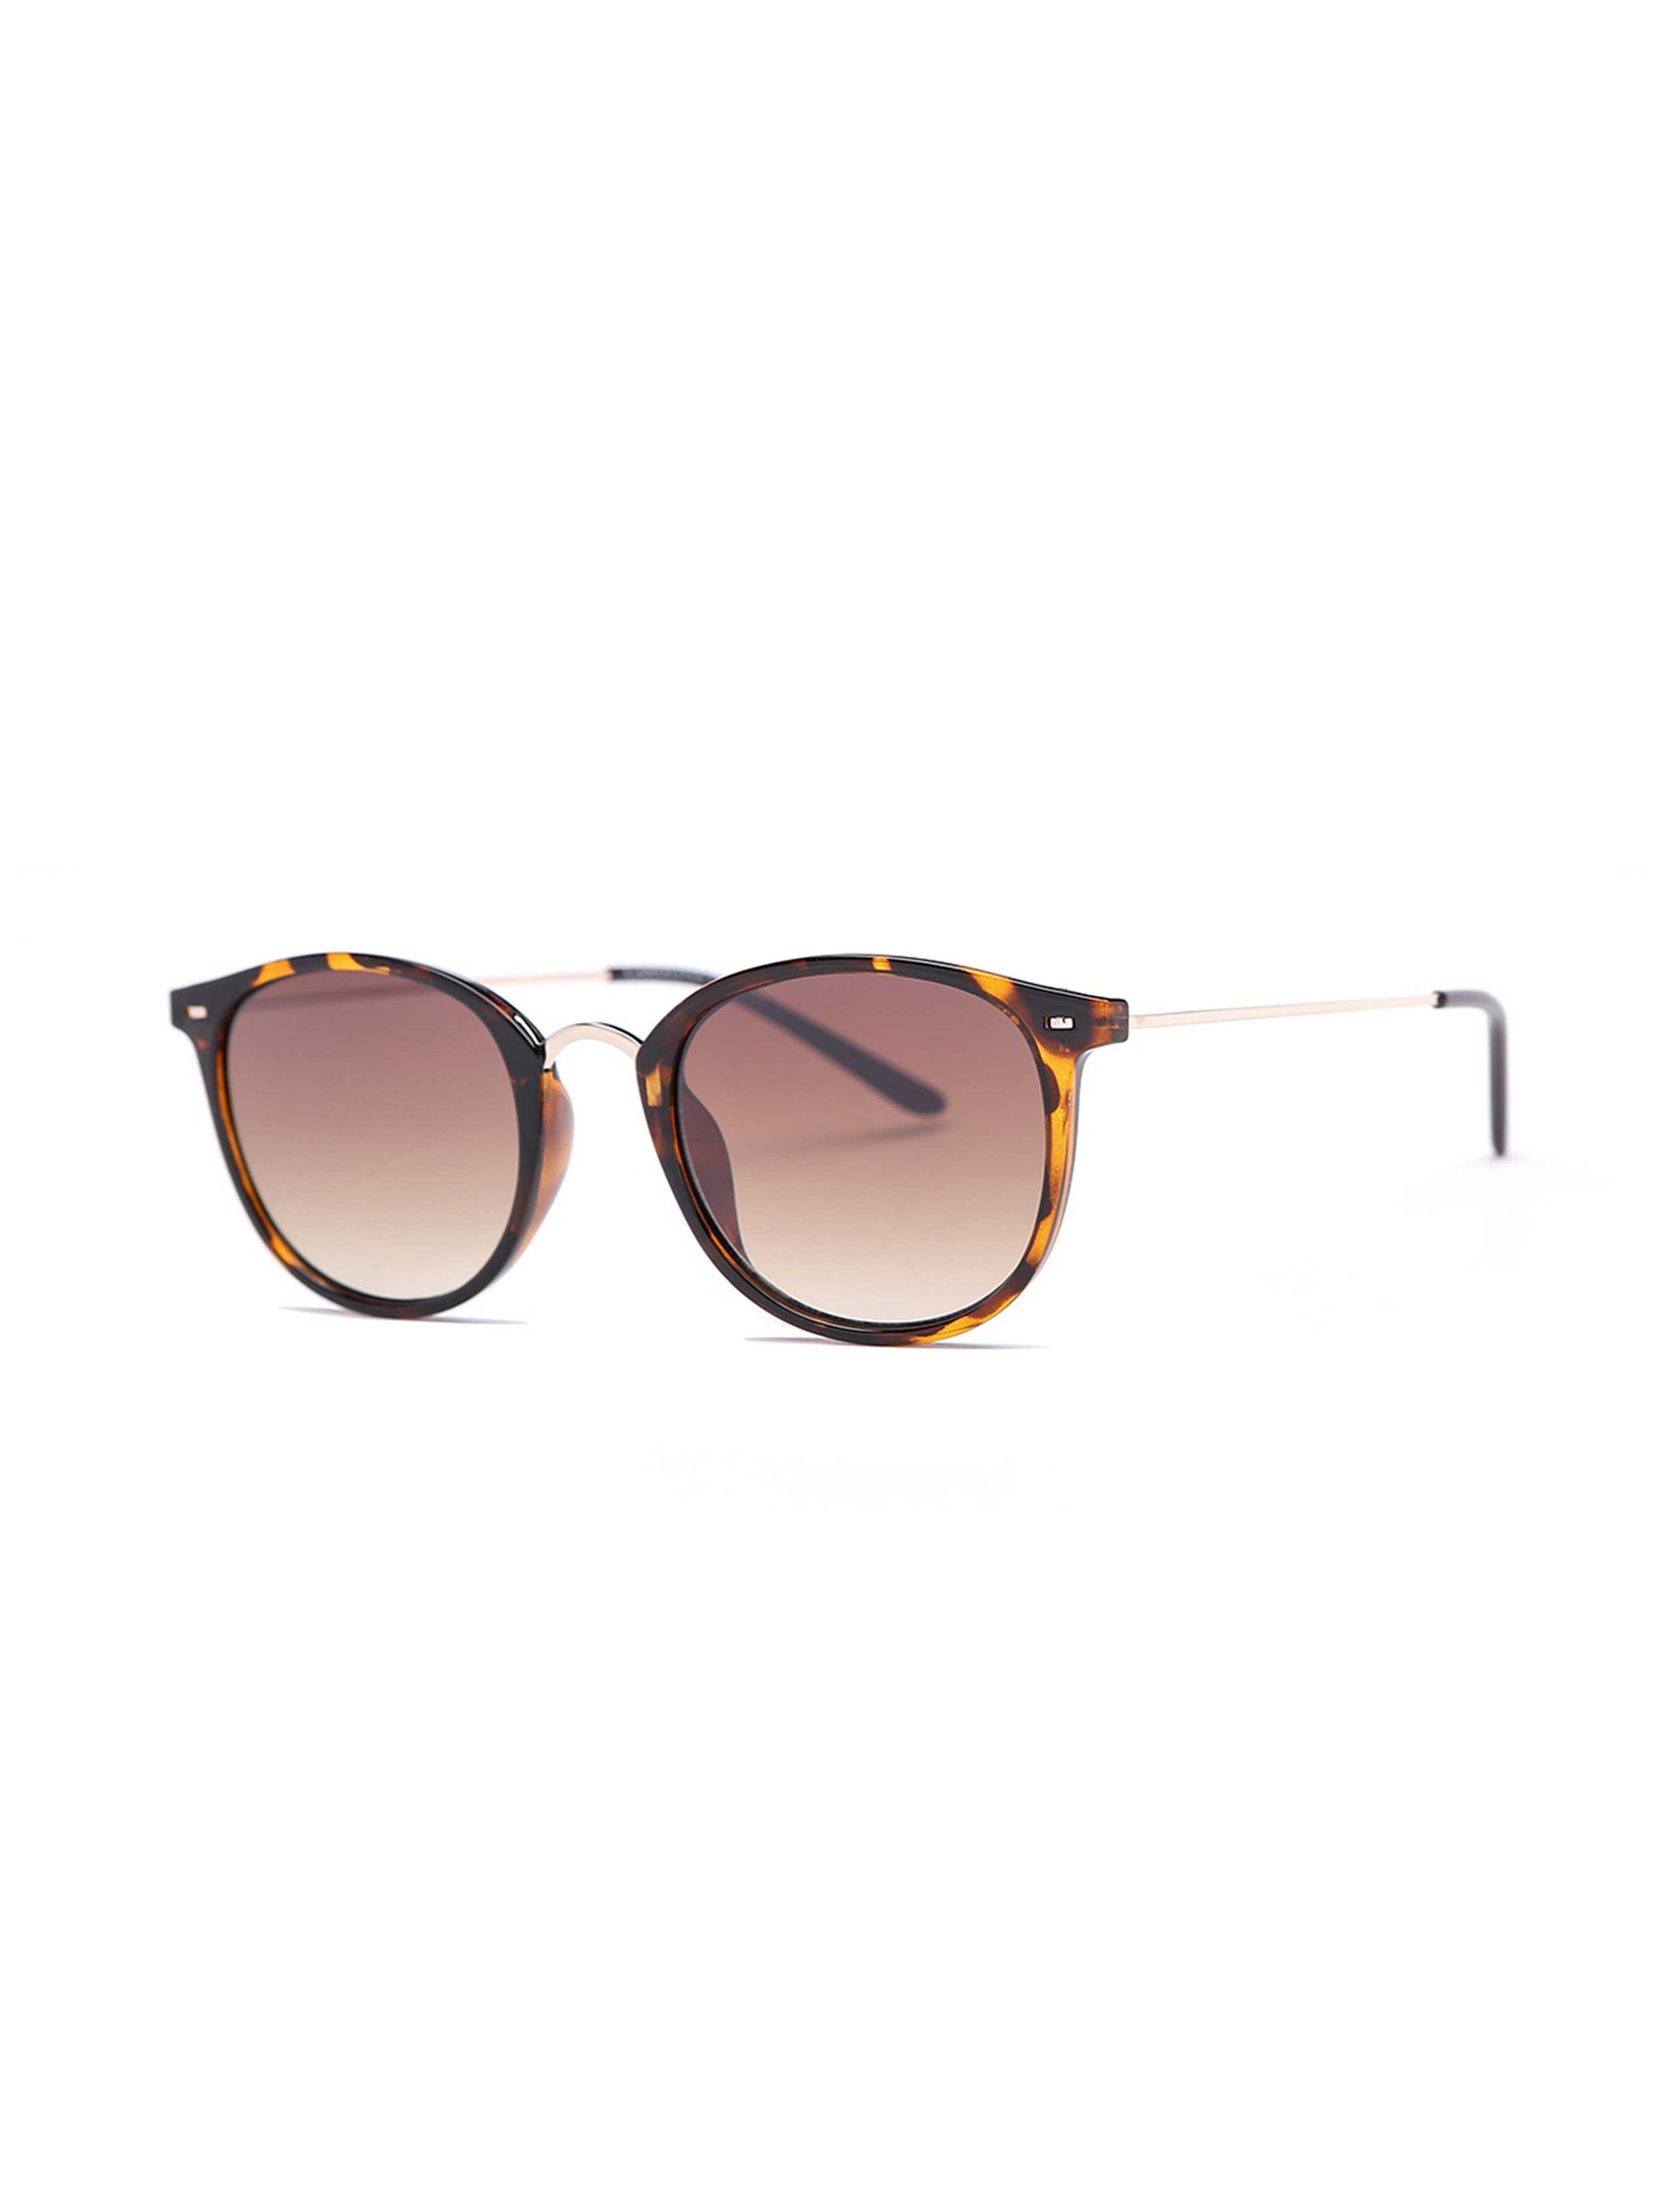 Lentes Carolina Lemke CL1623 02